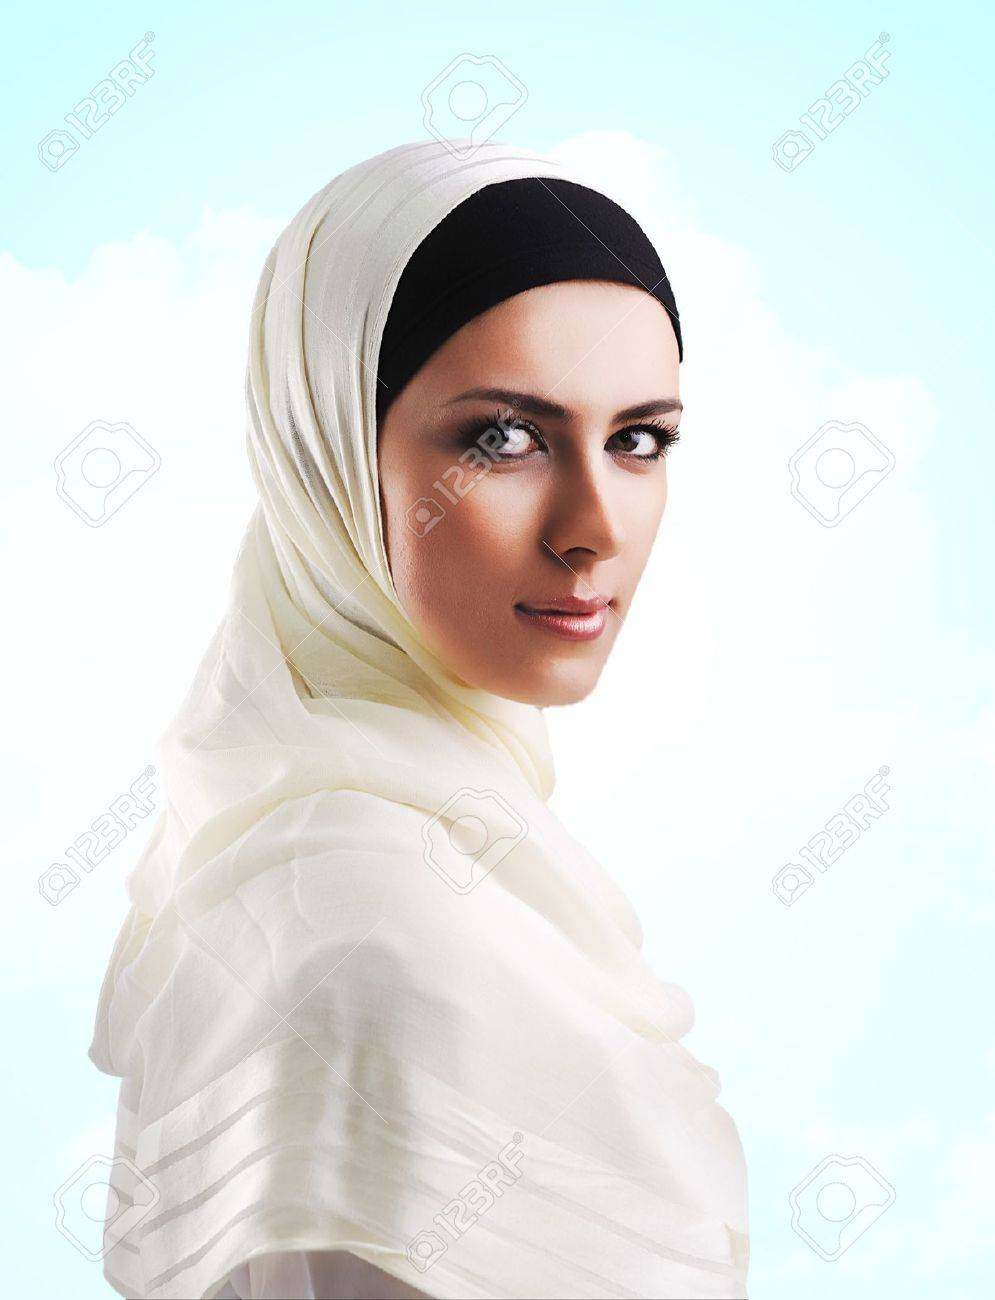 muslim single women in wortham Wortham's best 100% free muslim dating site meet thousands of single muslims in wortham with mingle2's free muslim personal ads and chat rooms our network of muslim men and women in wortham is the perfect place to make muslim friends or find a muslim boyfriend or girlfriend in wortham.